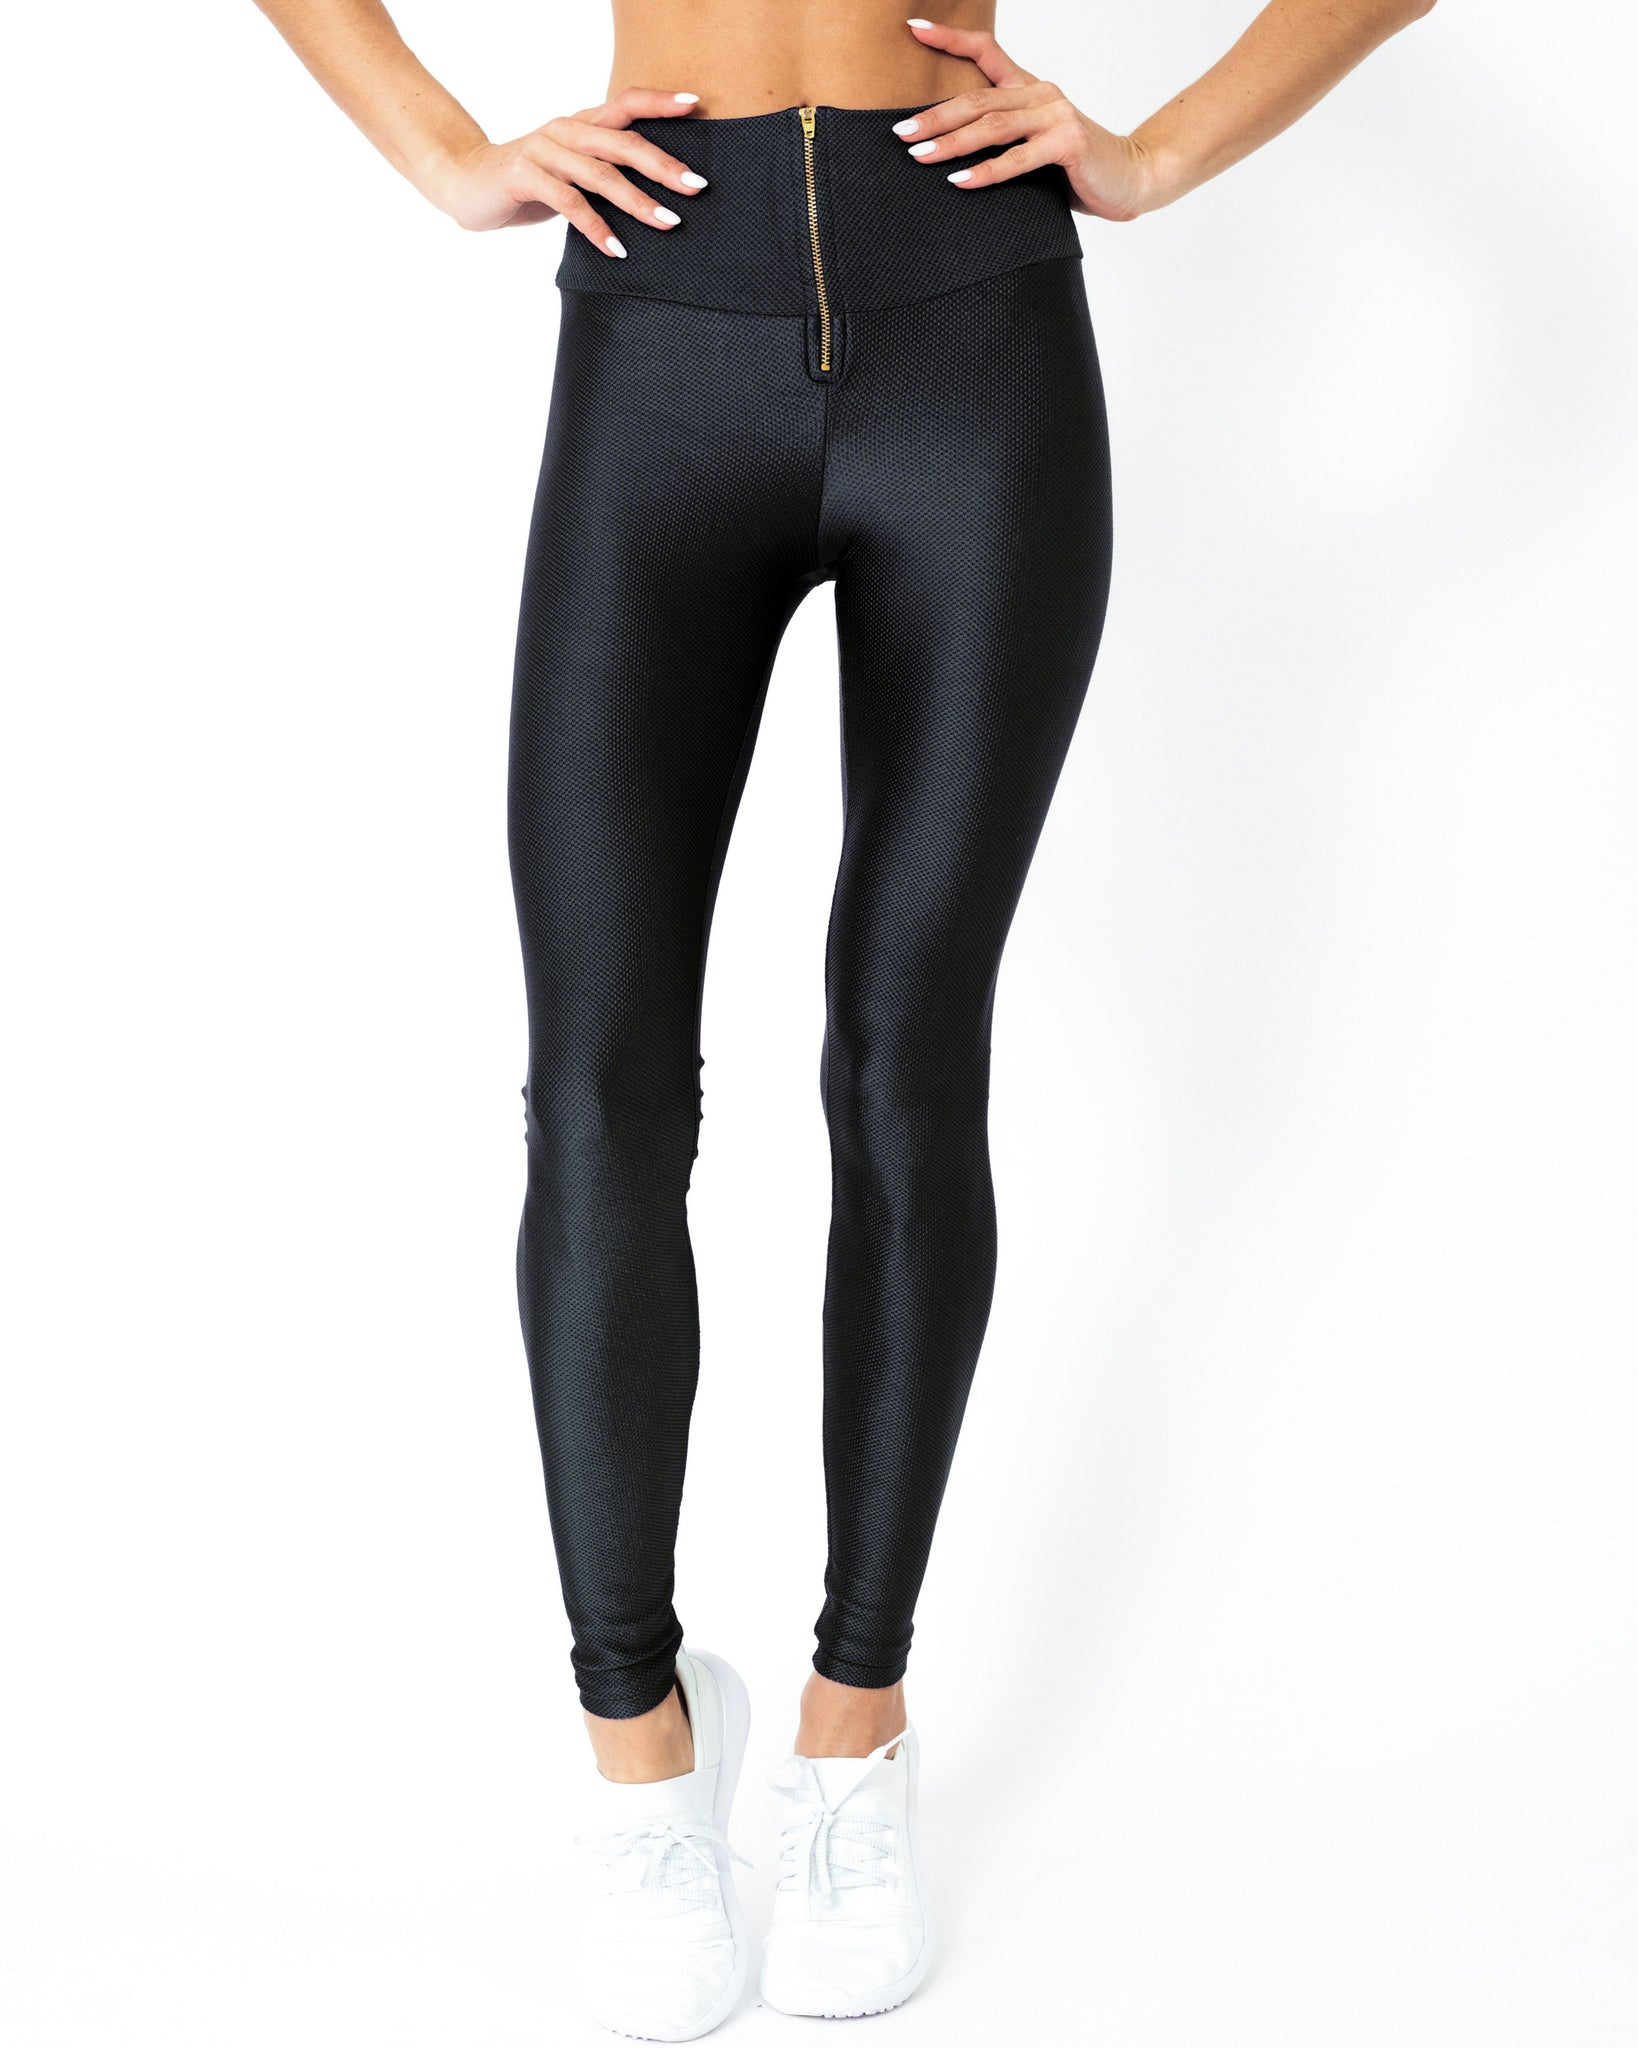 RSP Fashion - Nova Glam Body Sculpting Leggings - Black